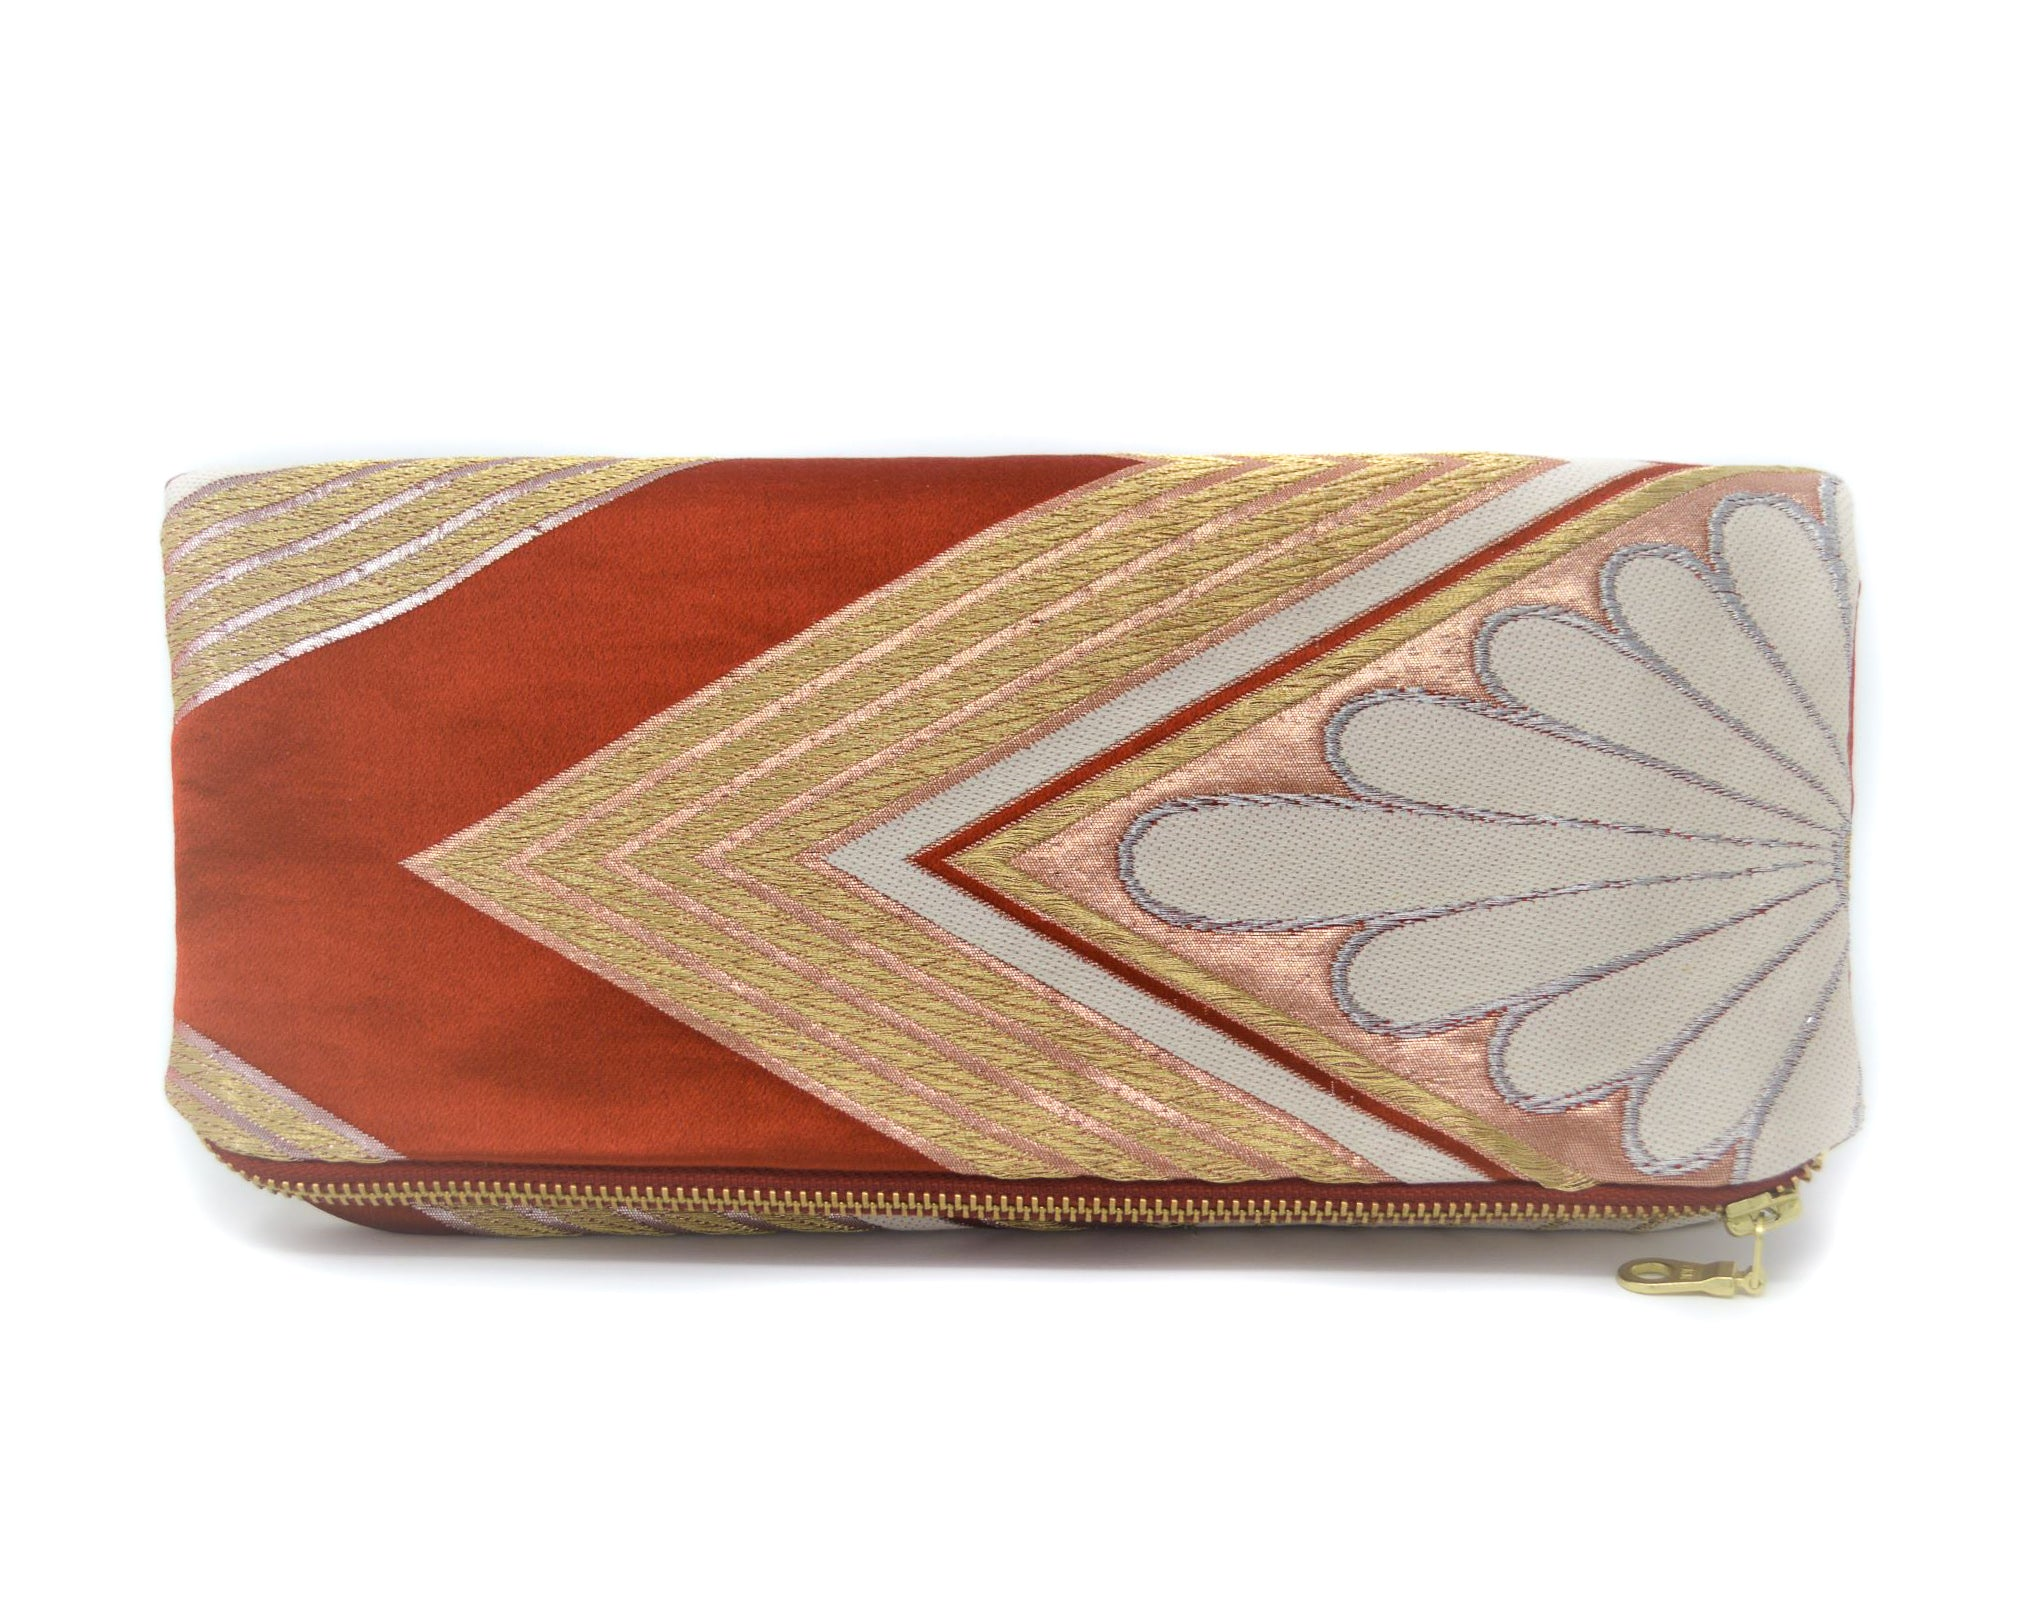 It's Electric - Handmade Foldover Clutch Purse